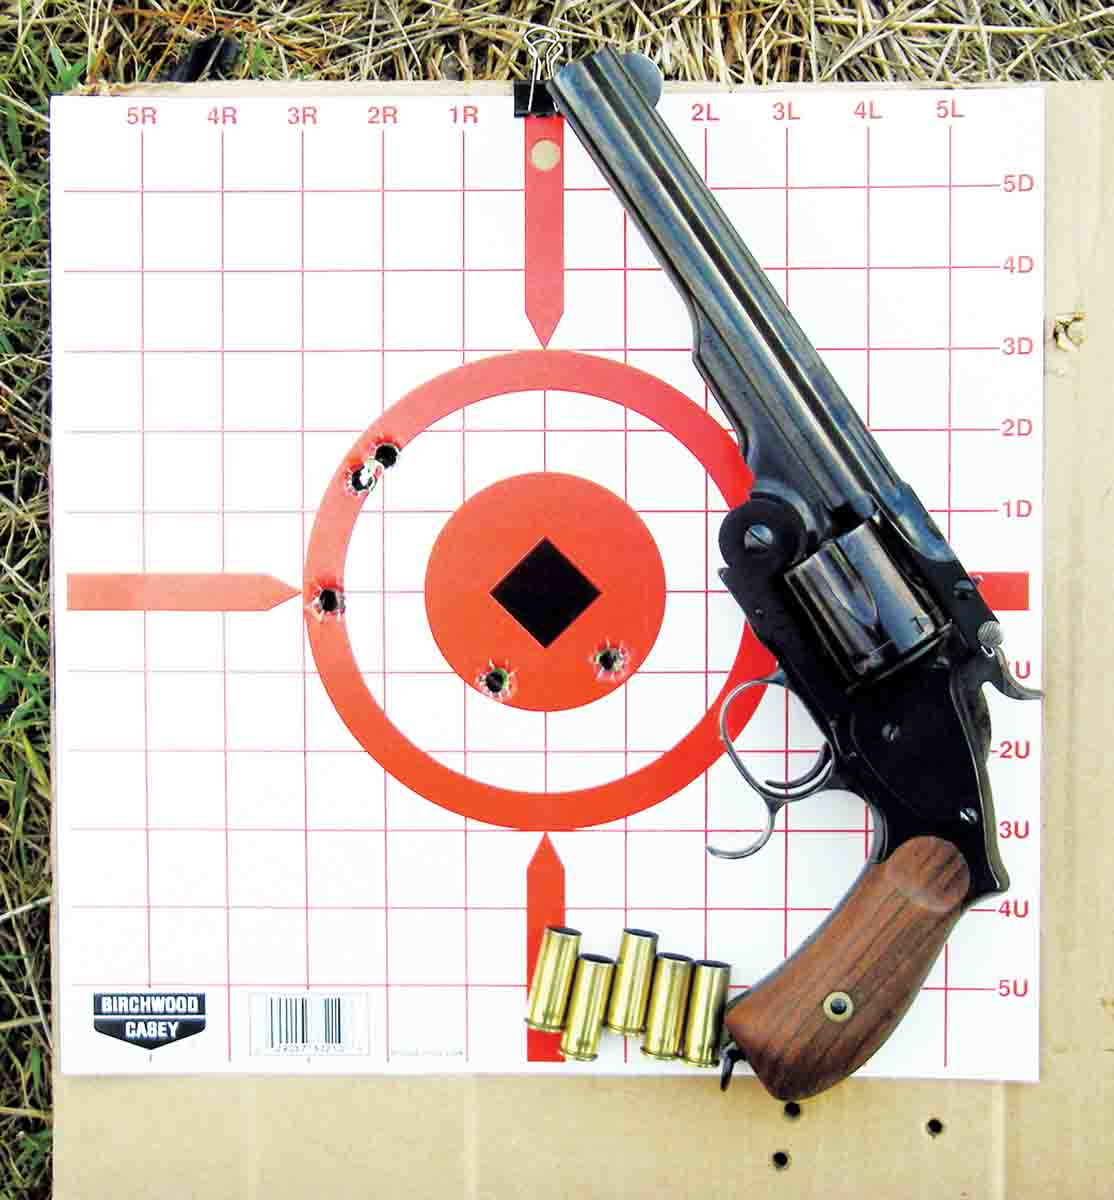 Most factory and handloads produced groups that hovered around 2½ to 4 inches at 25 yards.